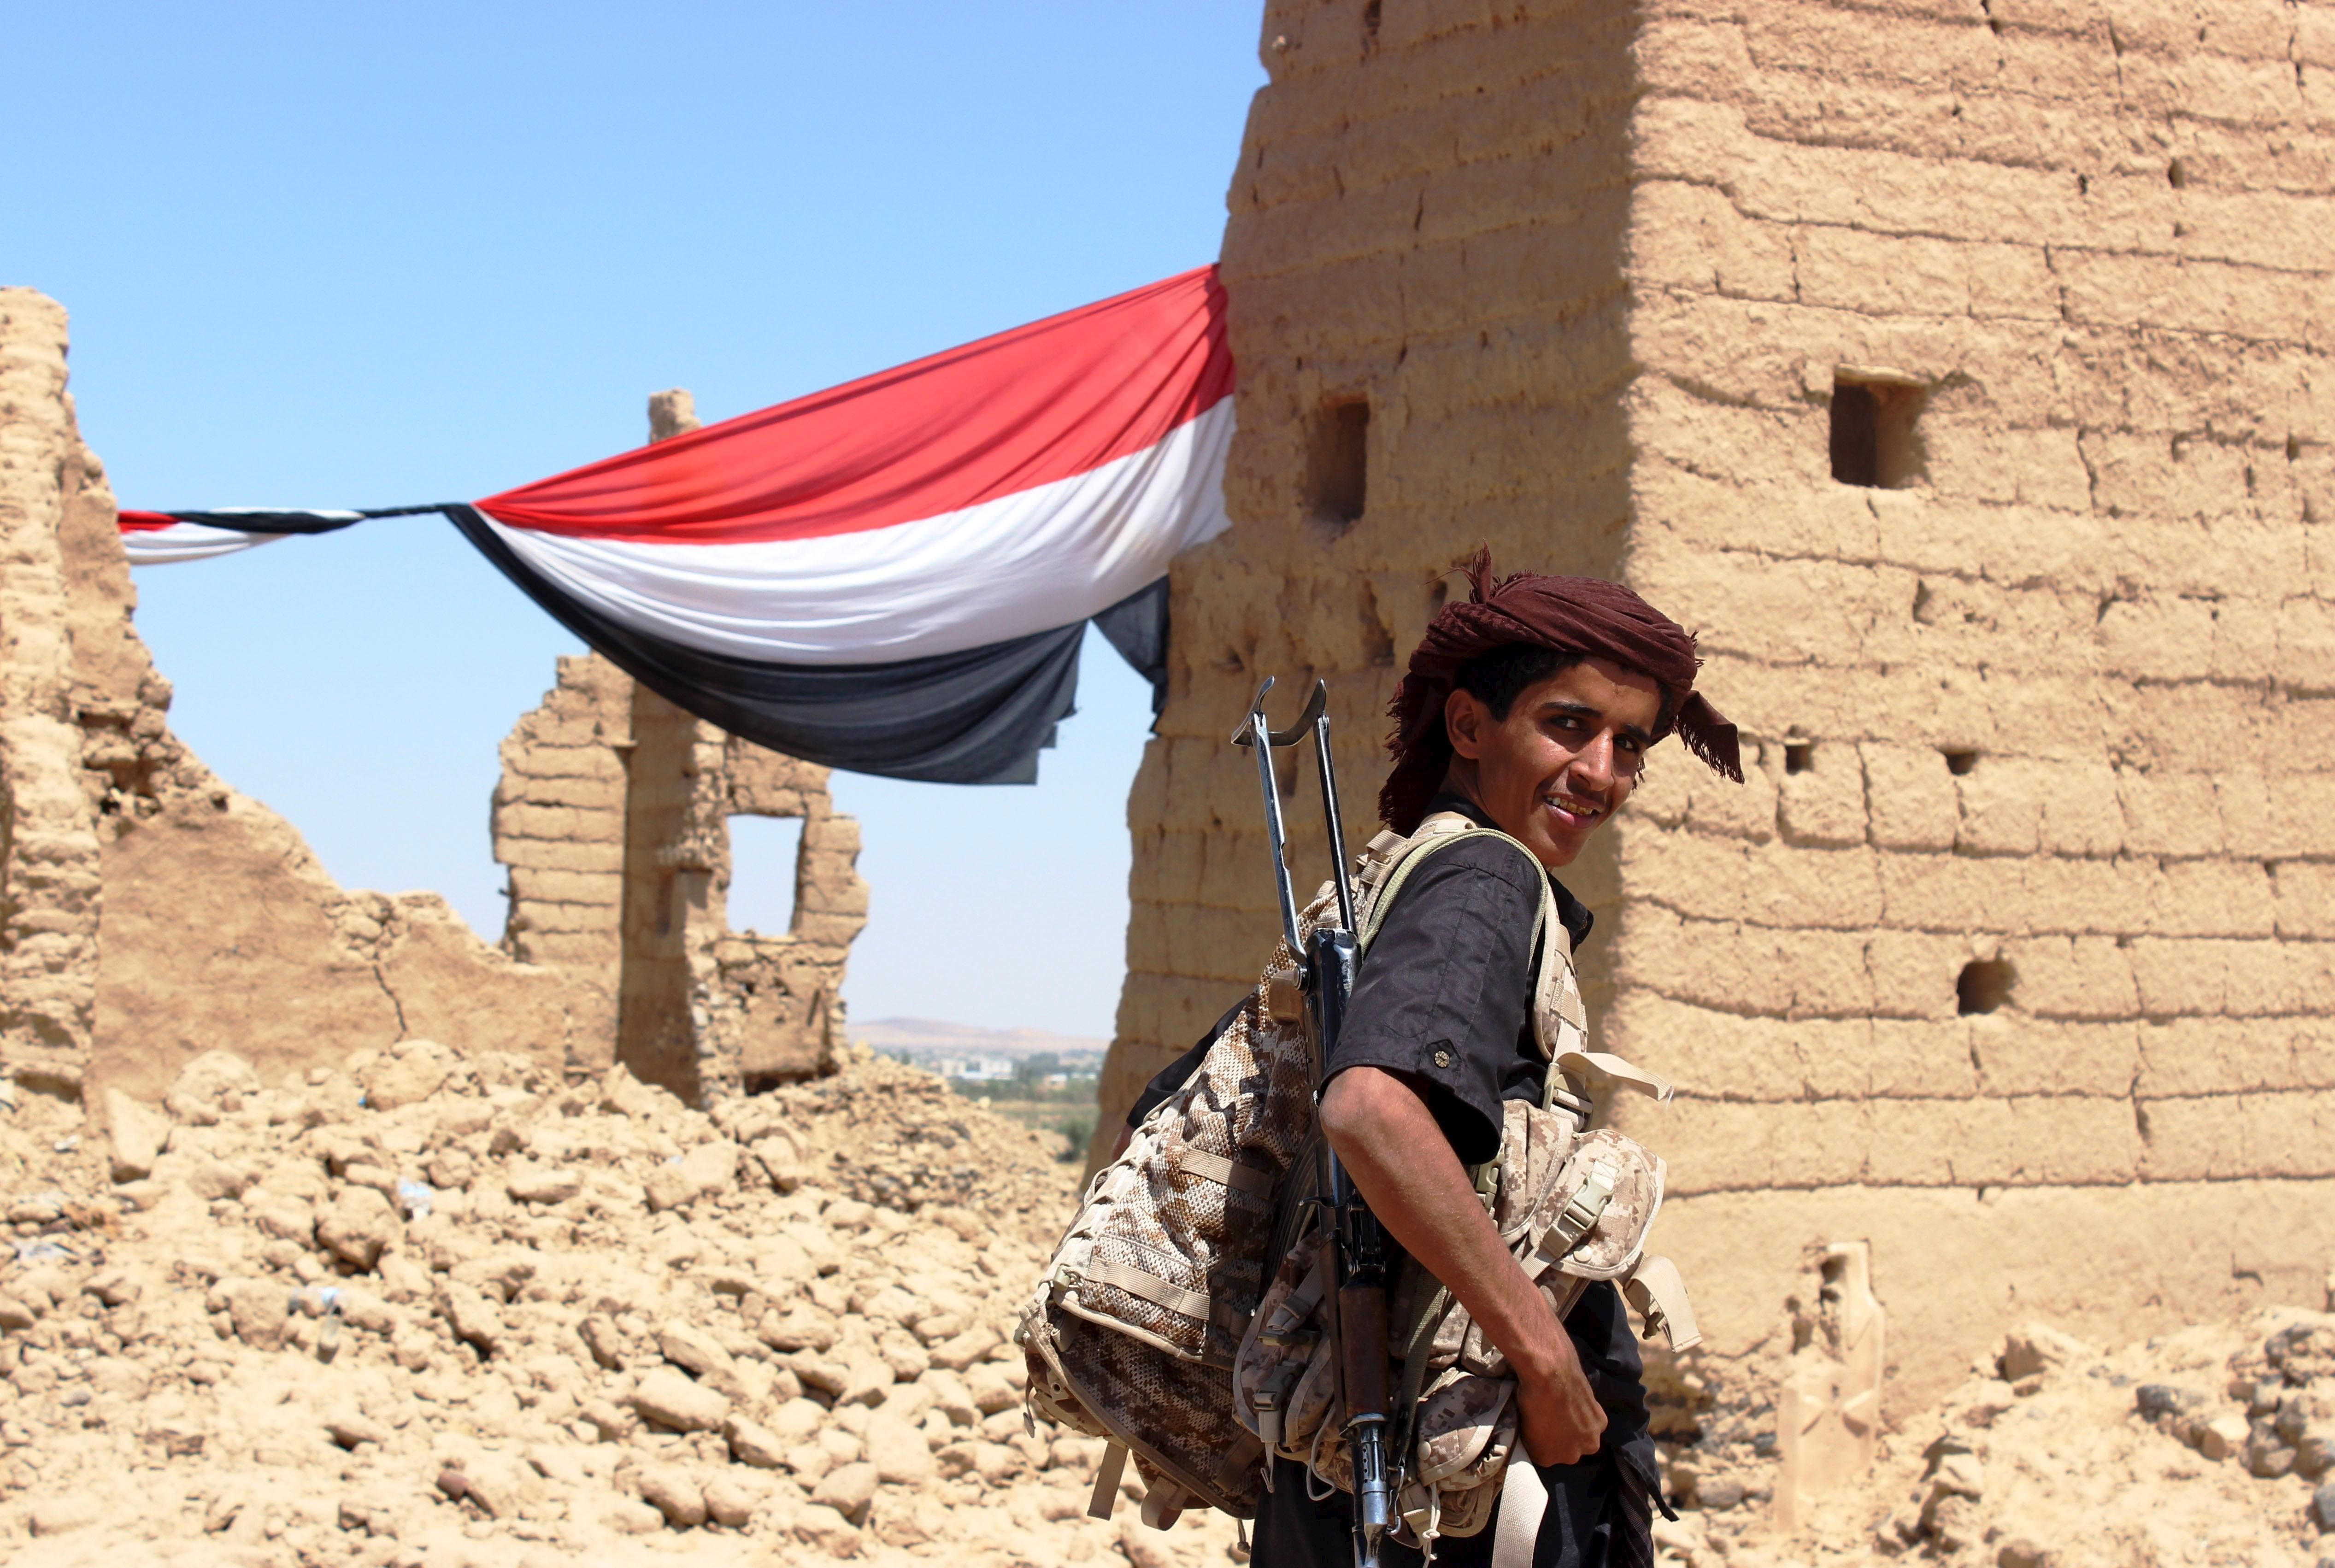 """A young Yemeni fighter shouldering a weapon smiles at the camera near Marib, Yemen October 16, 2015. Marib is a city that is heavily armed even by the standards of Yemen, where the ready availability of weapons helped start civil war and is now preventing anyone coming out on top. Yemenis often say there are three guns for every person, a boast that has become an urgent concern in a country where the United Nations says the humanitarian situation is """"critical""""."""